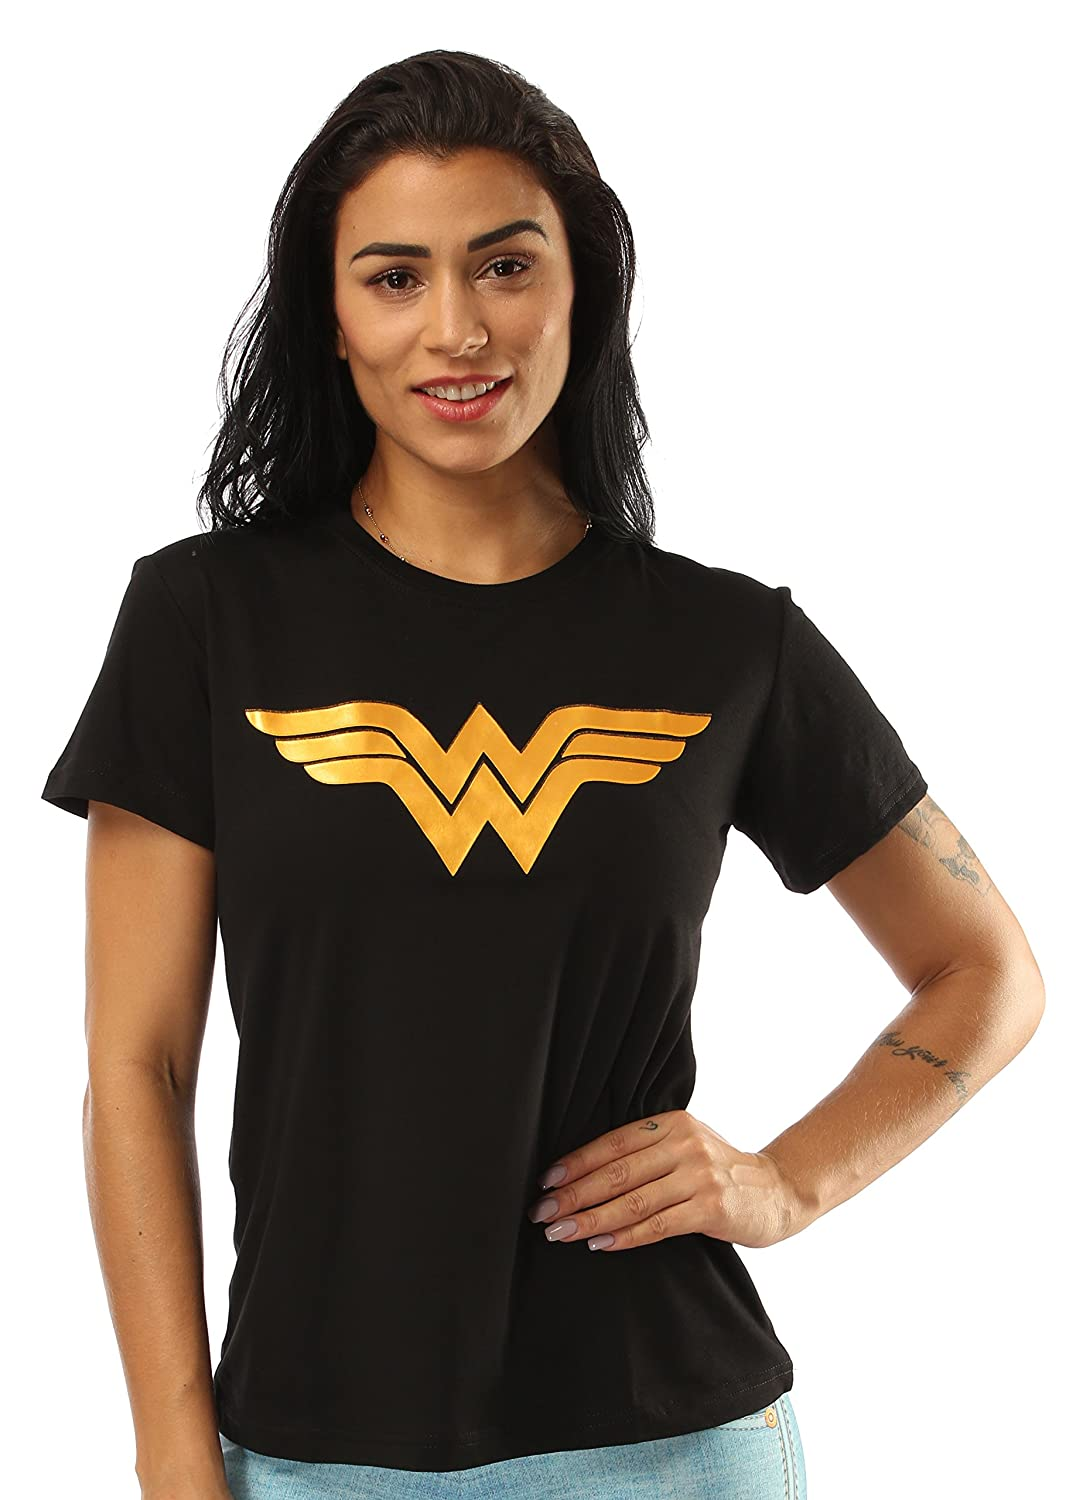 b21d0cf4a54cc Amazon.com  Justice League Wonder Woman Casual T-Shirt for Women Girls -  Youth Size  Clothing